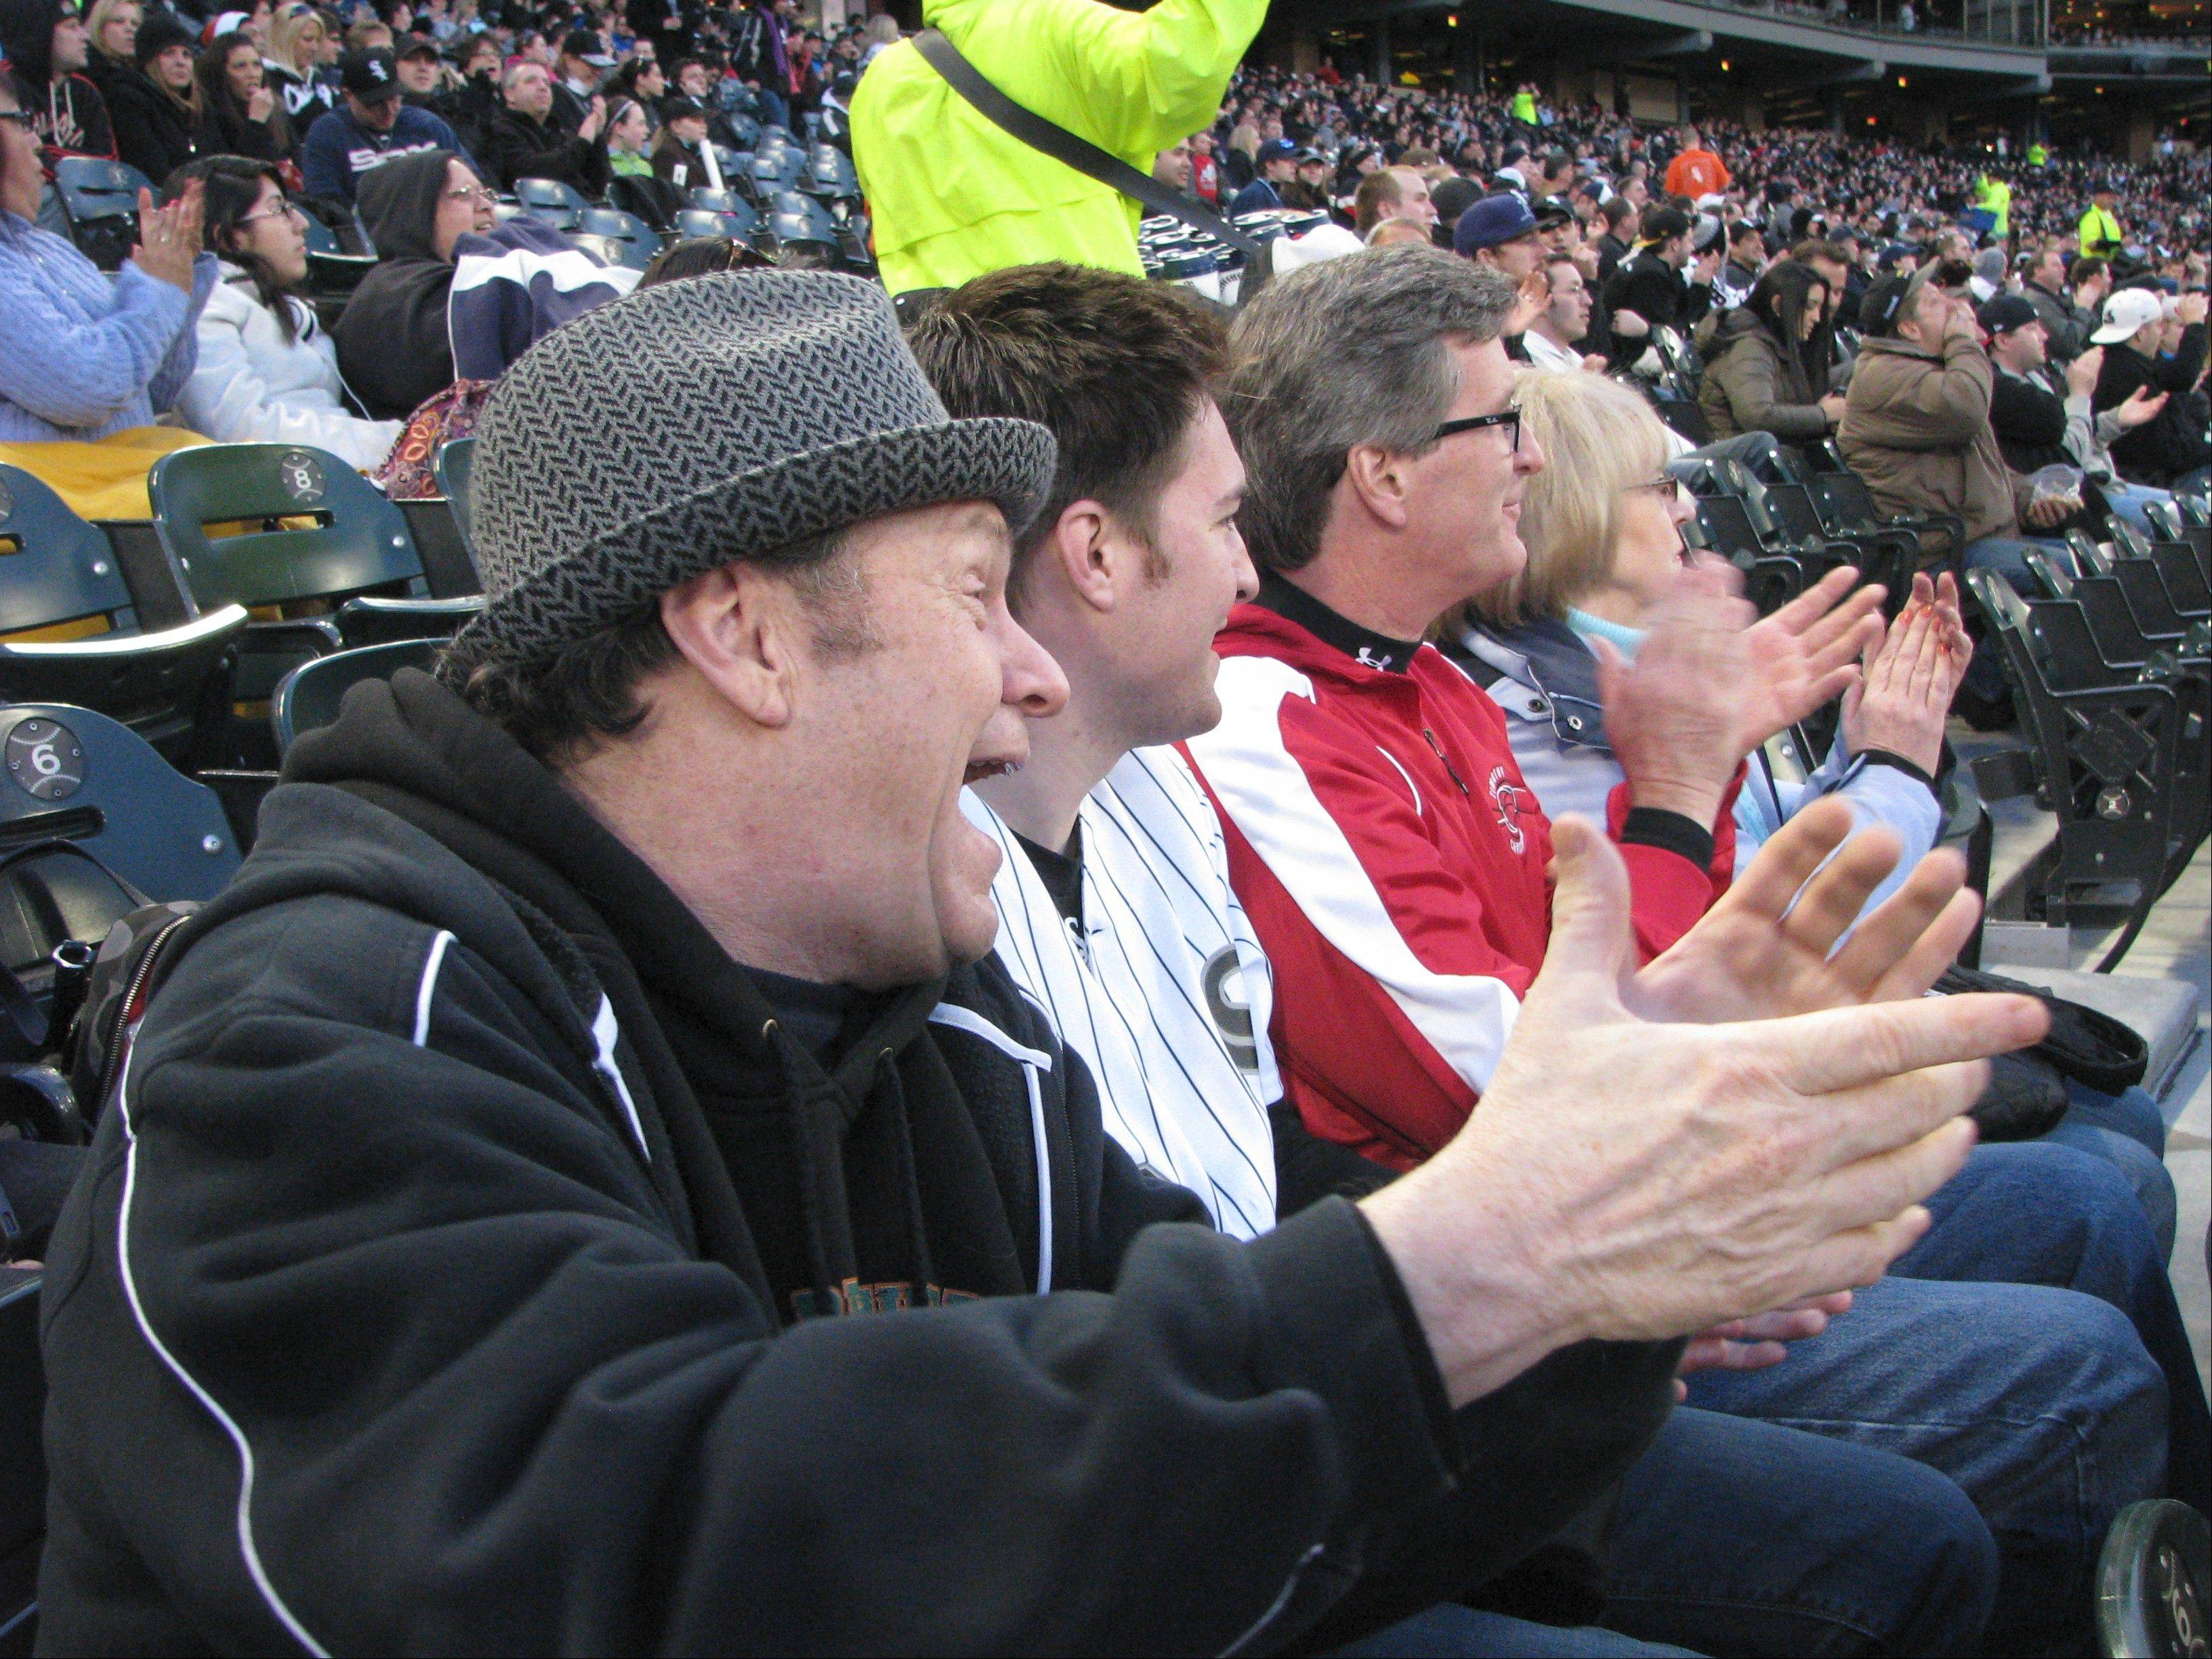 Mike North, left, enjoys a White Sox game last Thursday with three fans who joined him for the trip to U.S. Cellular Field: Jim Bowe, Mark Baumbach and Debbie Kaminski.